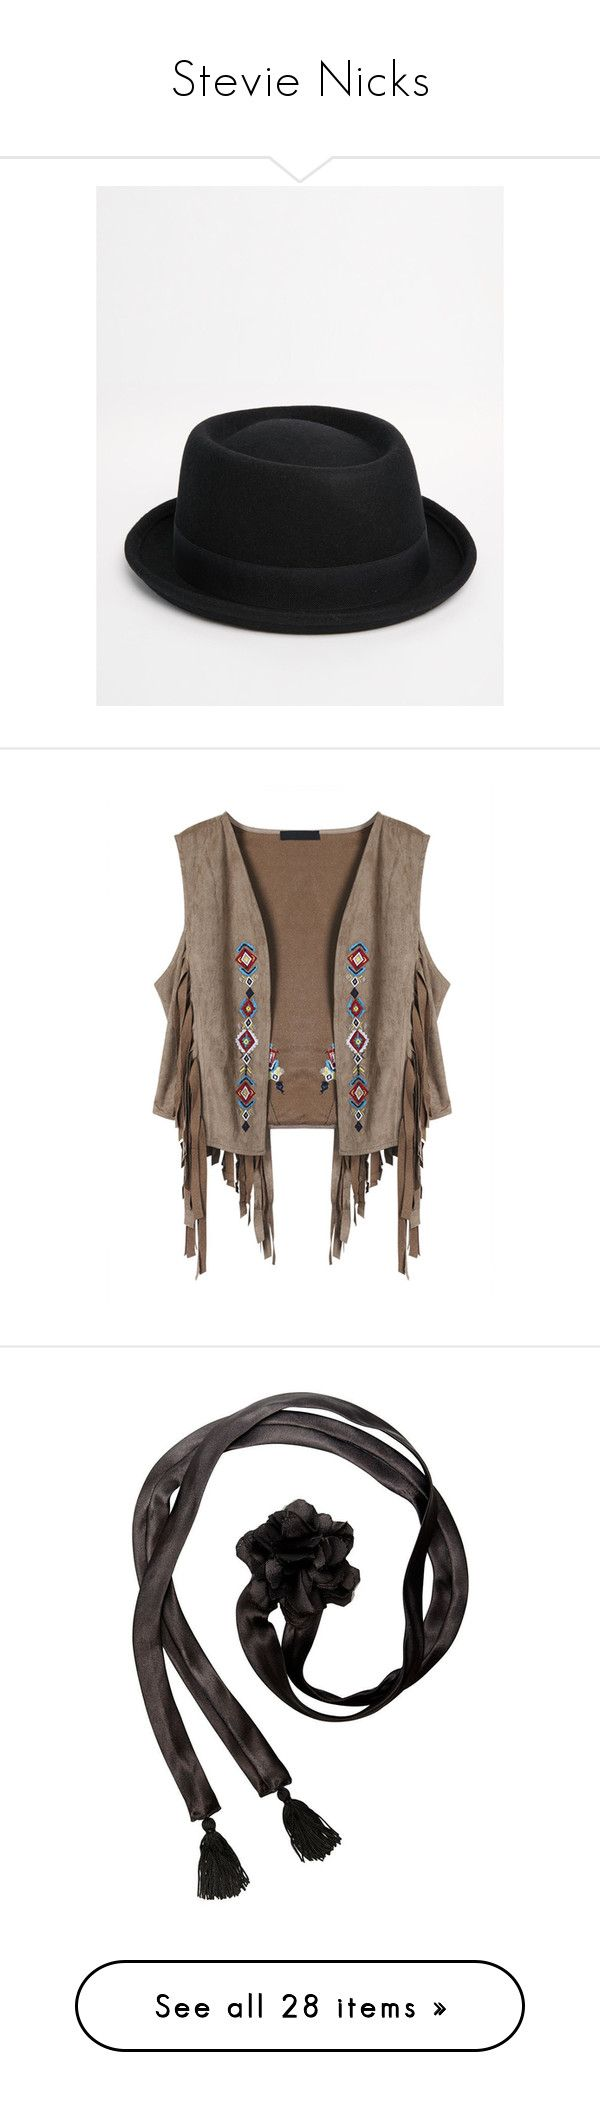 """""""Stevie Nicks"""" by nikka-phillips ❤ liked on Polyvore featuring men's fashion, men's accessories, men's hats, black, mens felt hat, outerwear, jackets, collar jacket, short-sleeve jackets and suede jacket"""